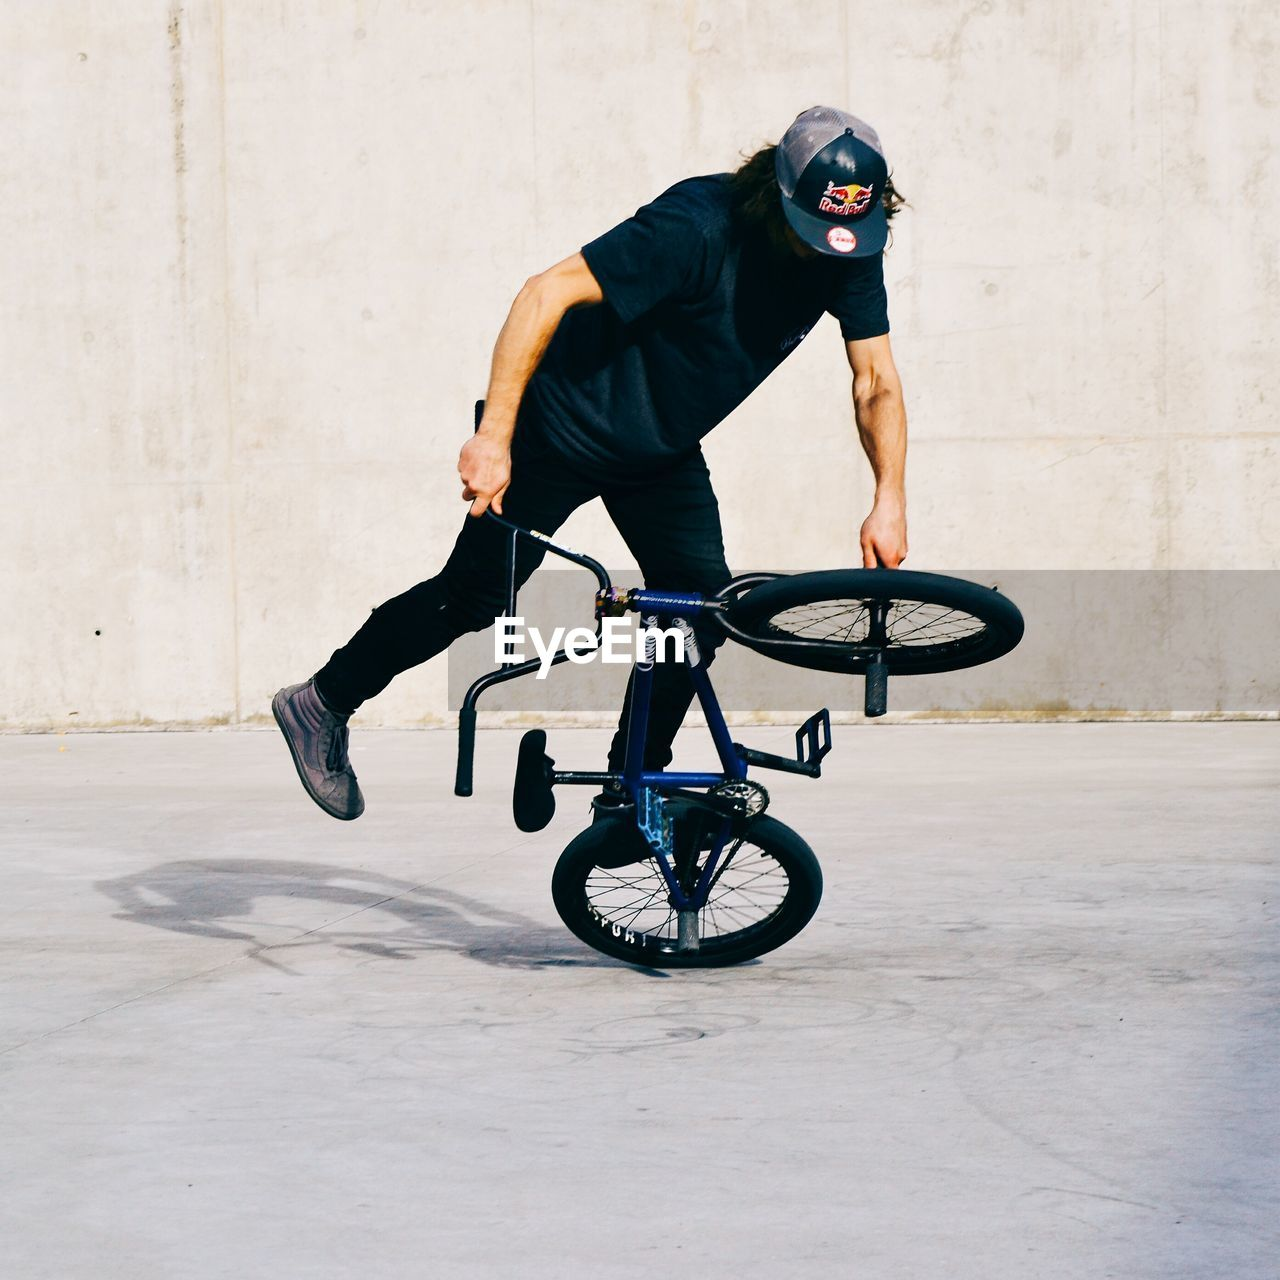 FULL LENGTH OF MAN RIDING BICYCLE ON WALL